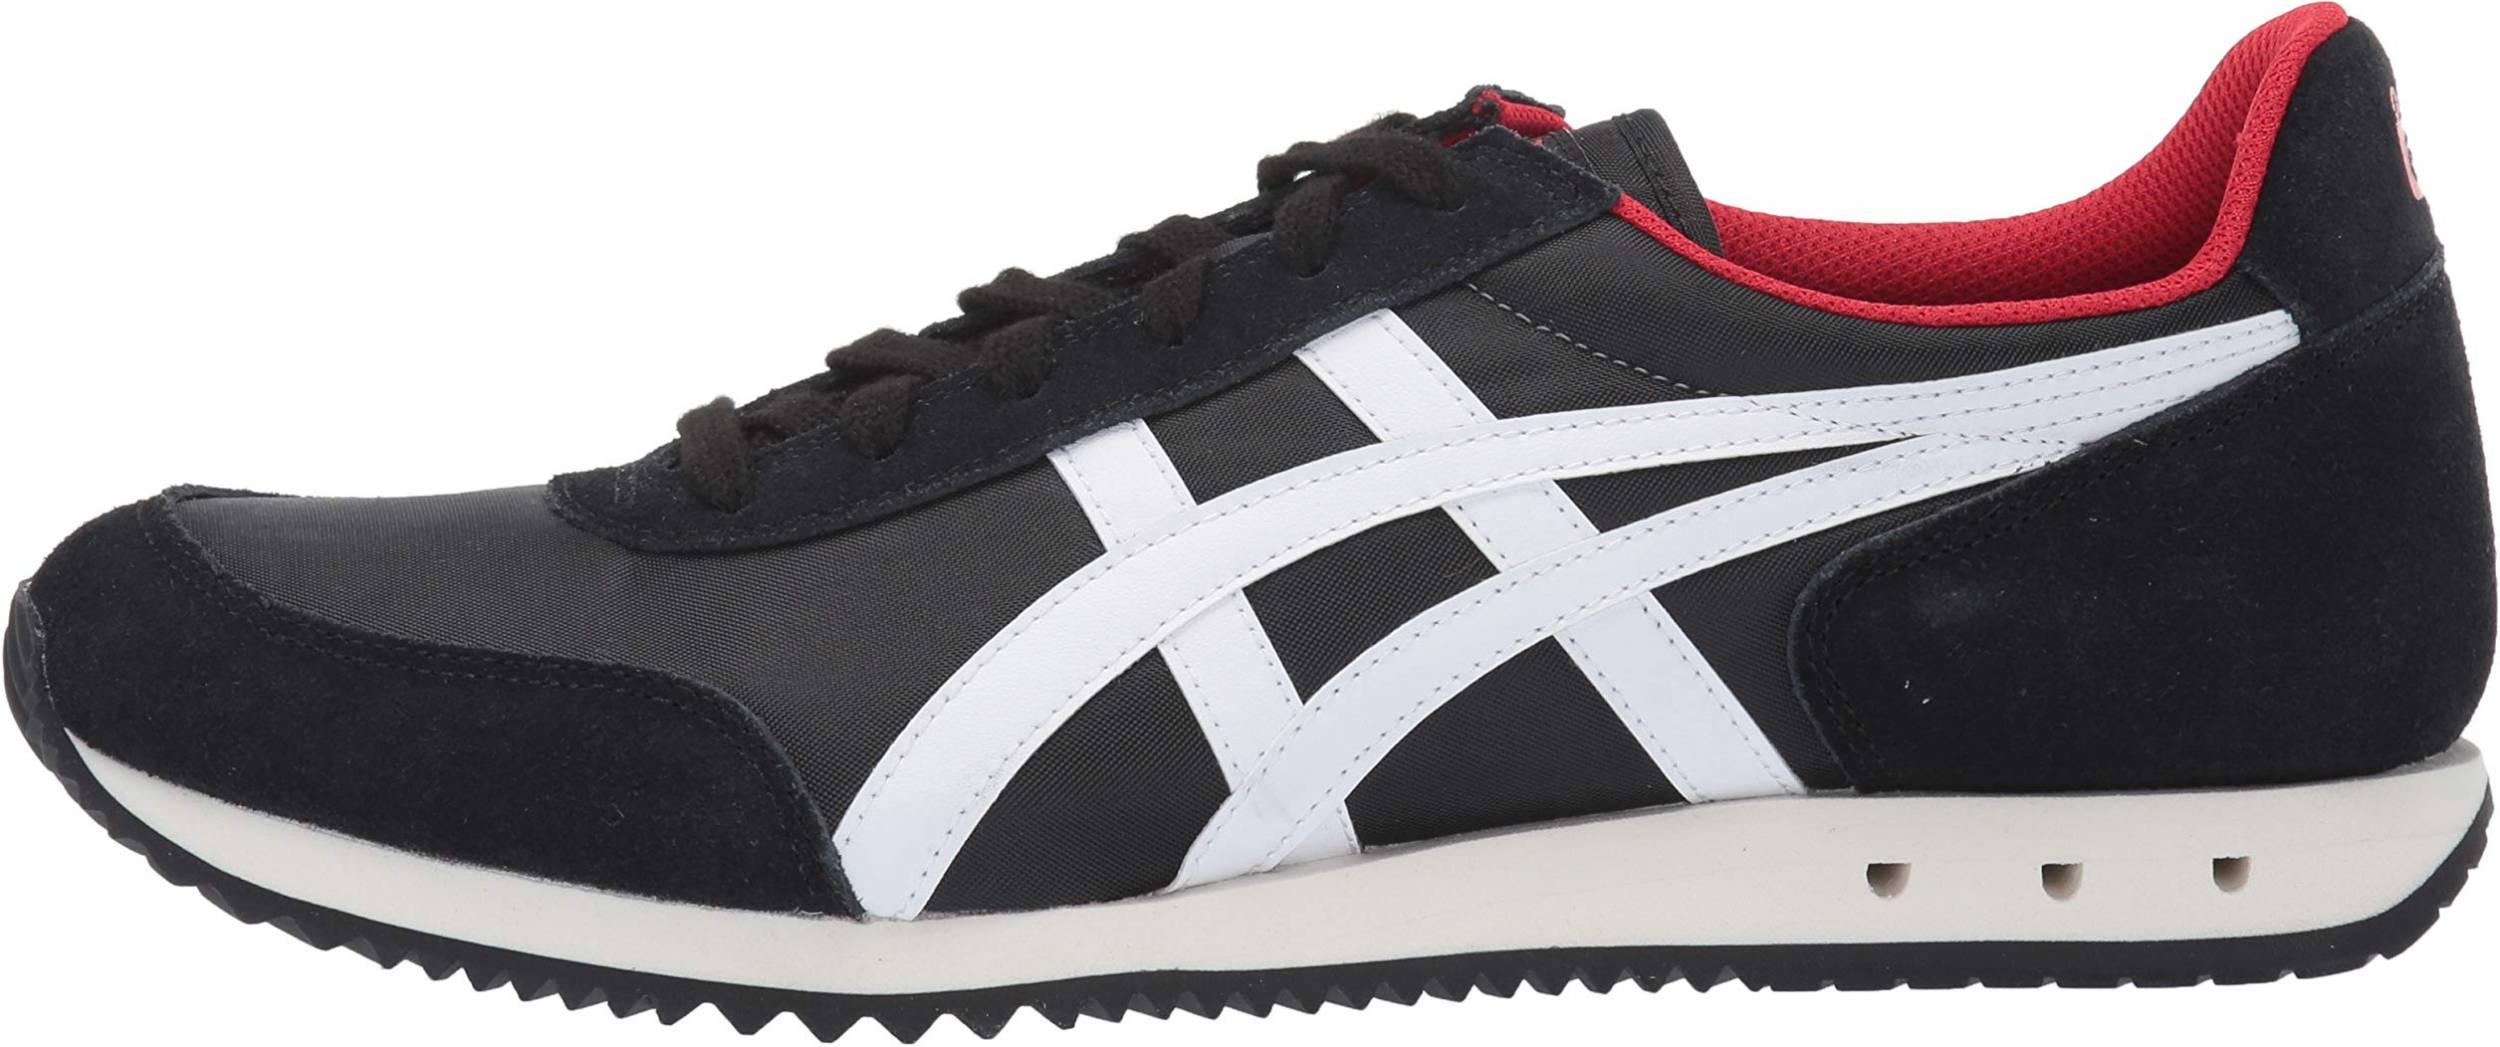 Save 45% on Onitsuka Tiger Sneakers (33